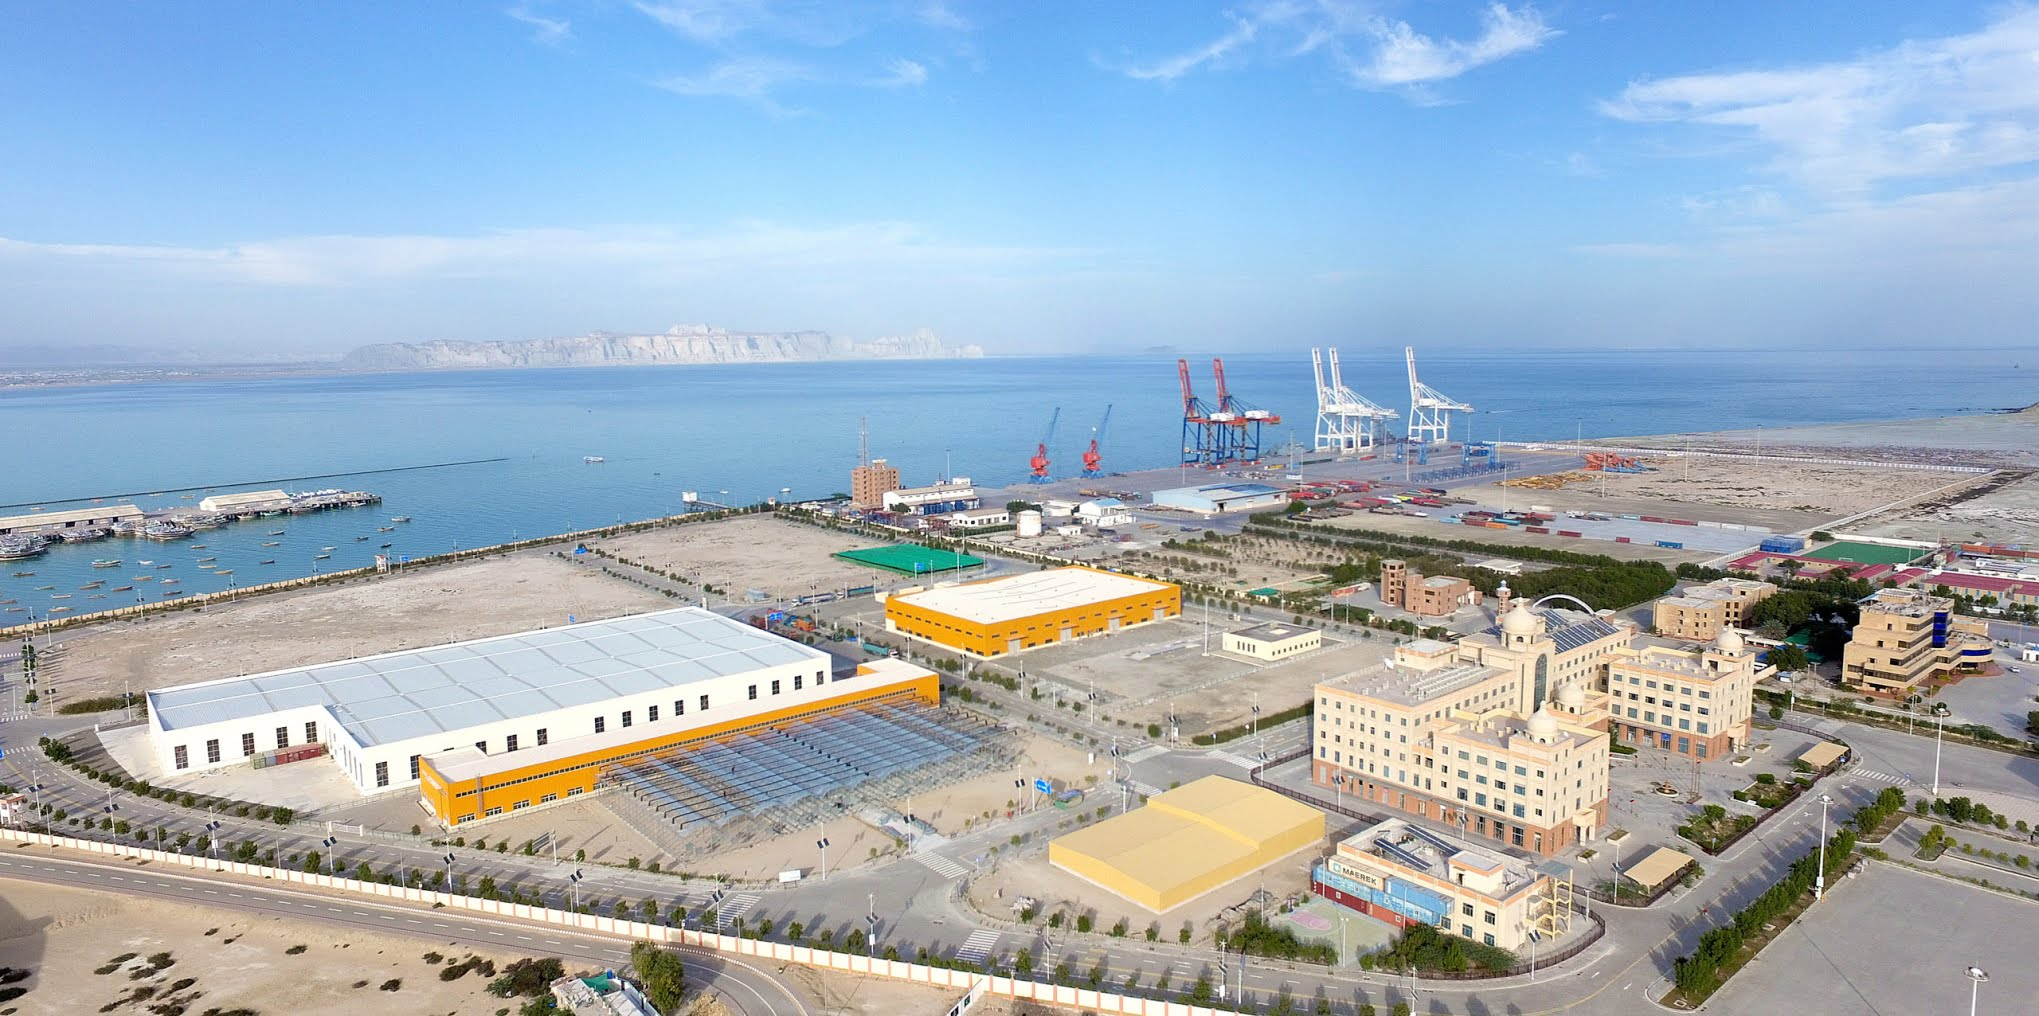 The Gwadar Free Zone and port area. Business was slow at the port when The Third Pole visited in April 2021. (Image: Shabbir Ahmed)